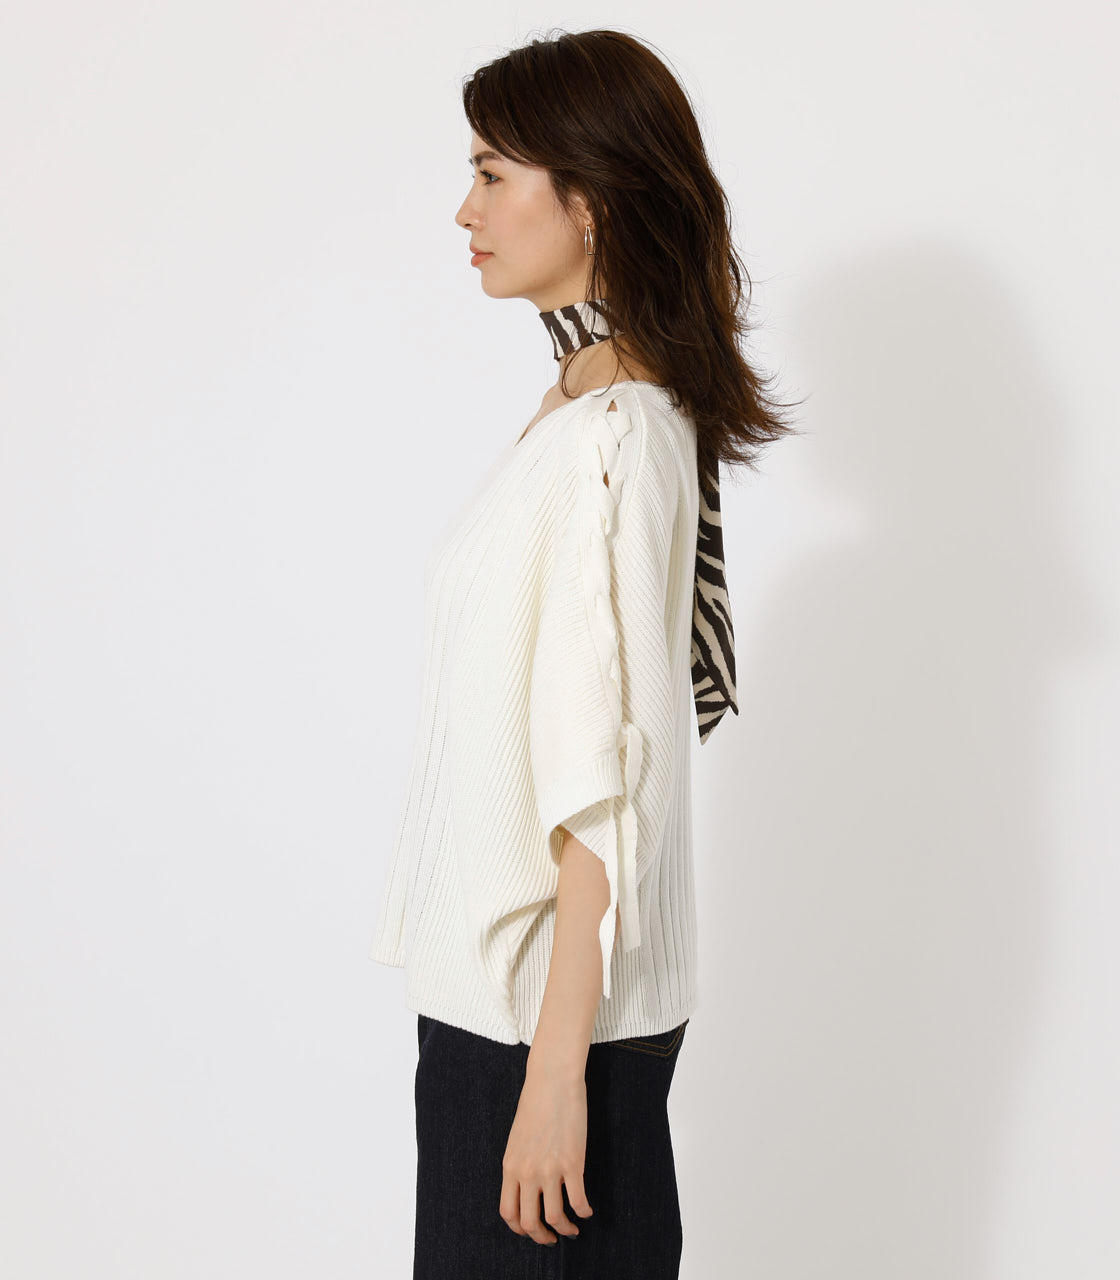 2WAY SHOULDER LACE-UP KNIT/2WAYショルダーレースアップニット 詳細画像 O/WHT 5